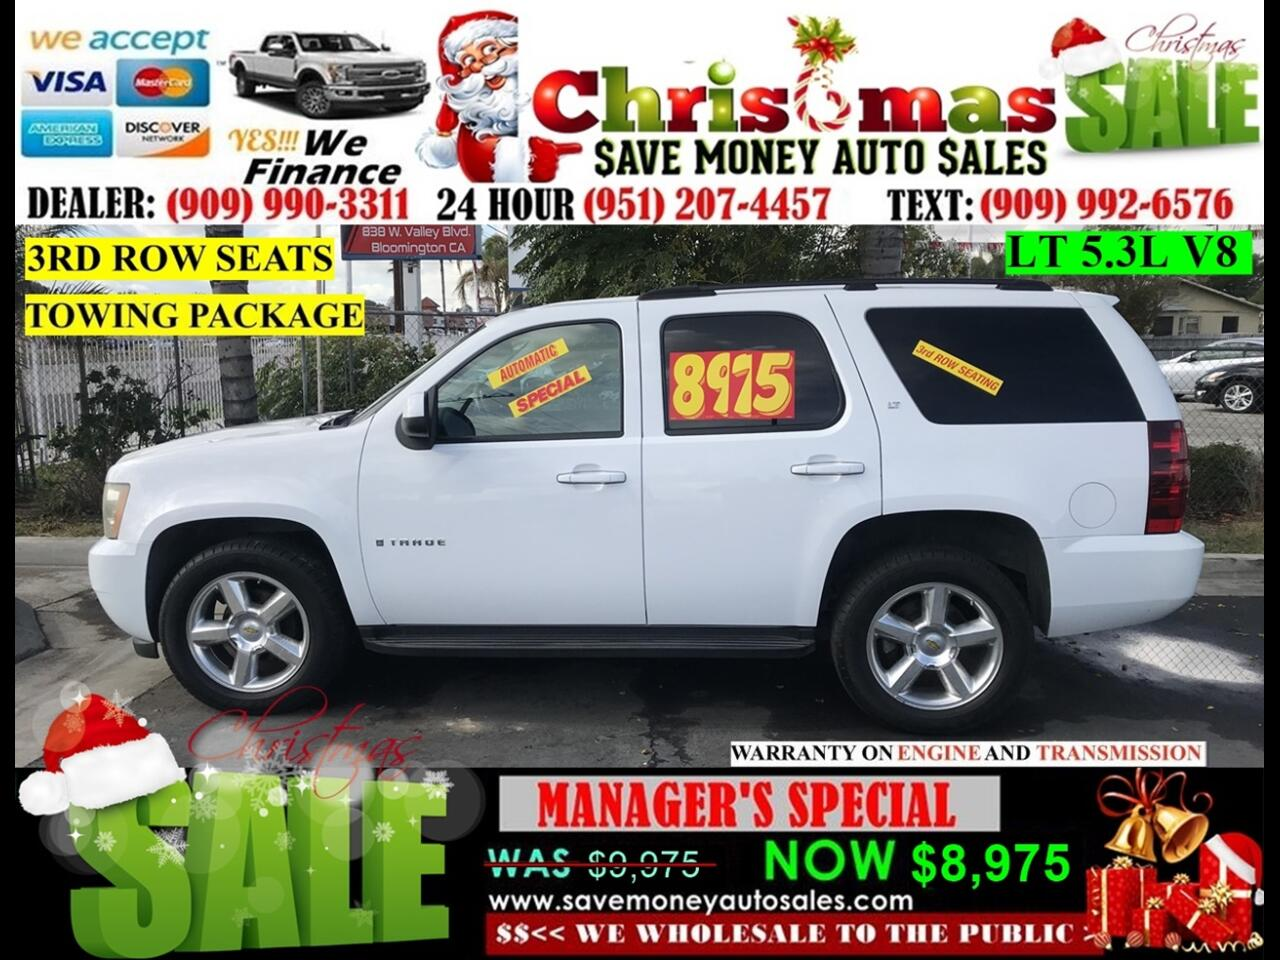 2007 Chevrolet Tahoe LTZ 2WD>>>WITH 3RD ROW PLUS FULLY LOADED>>>